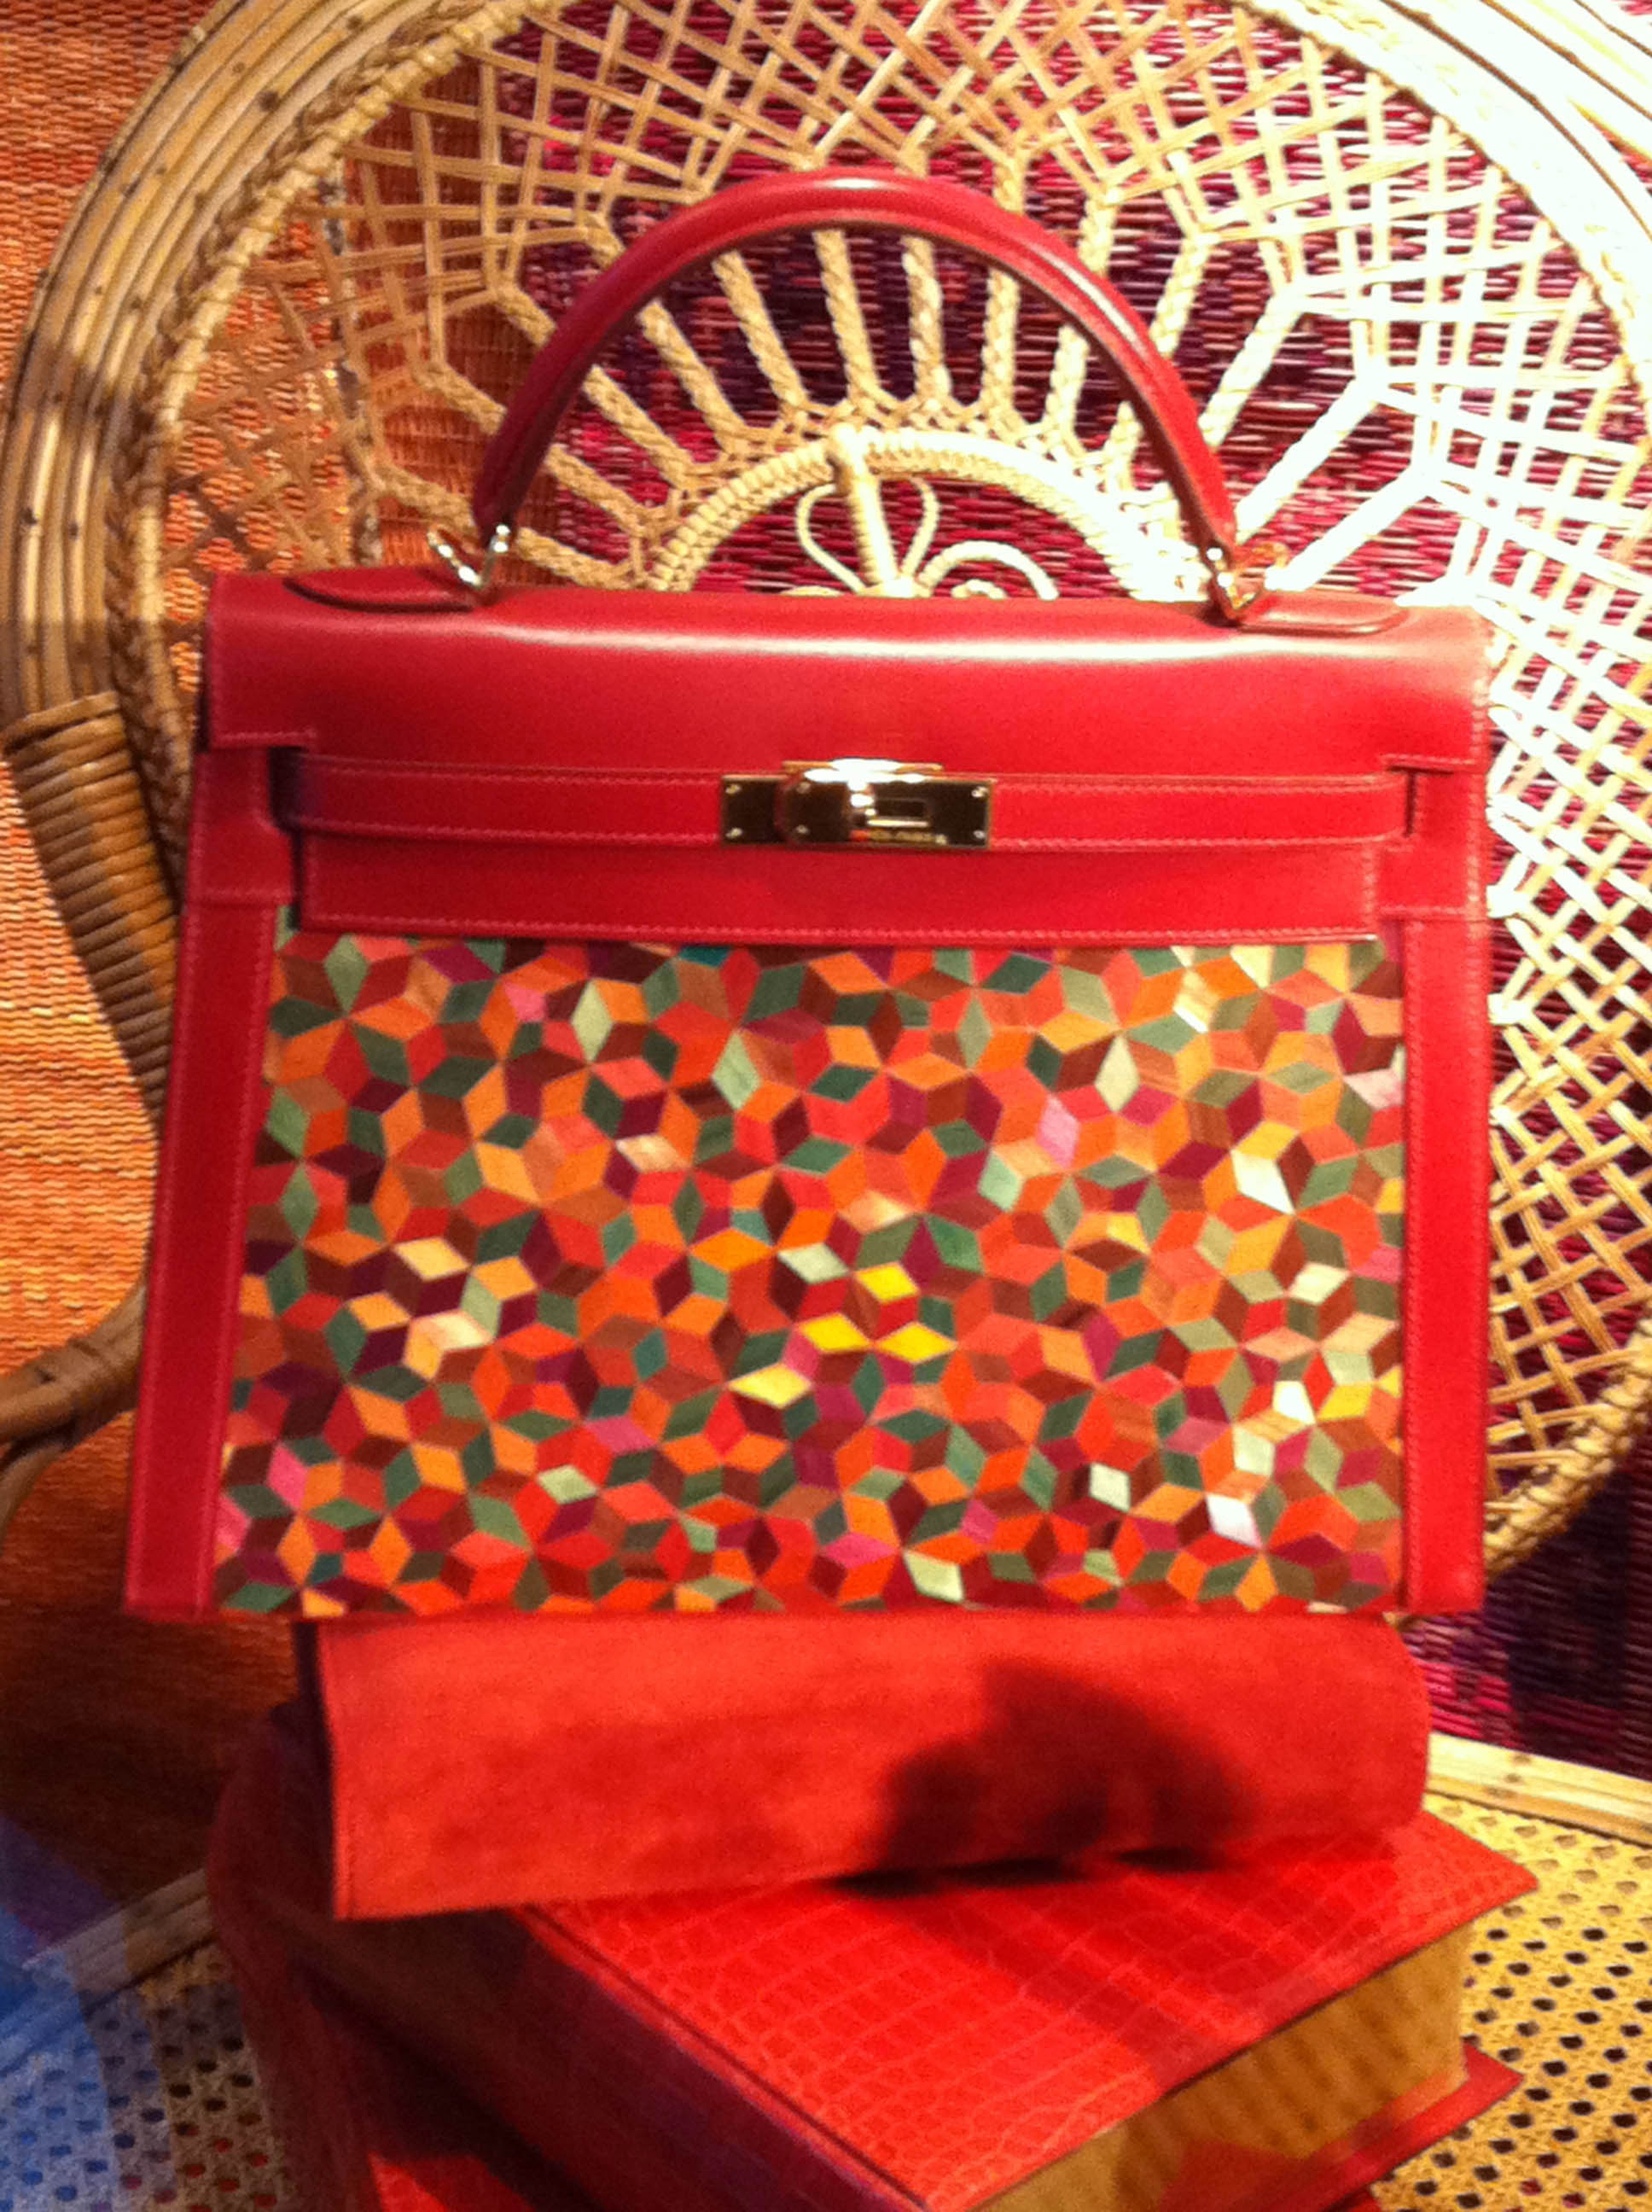 One of a kind Hermes Bag